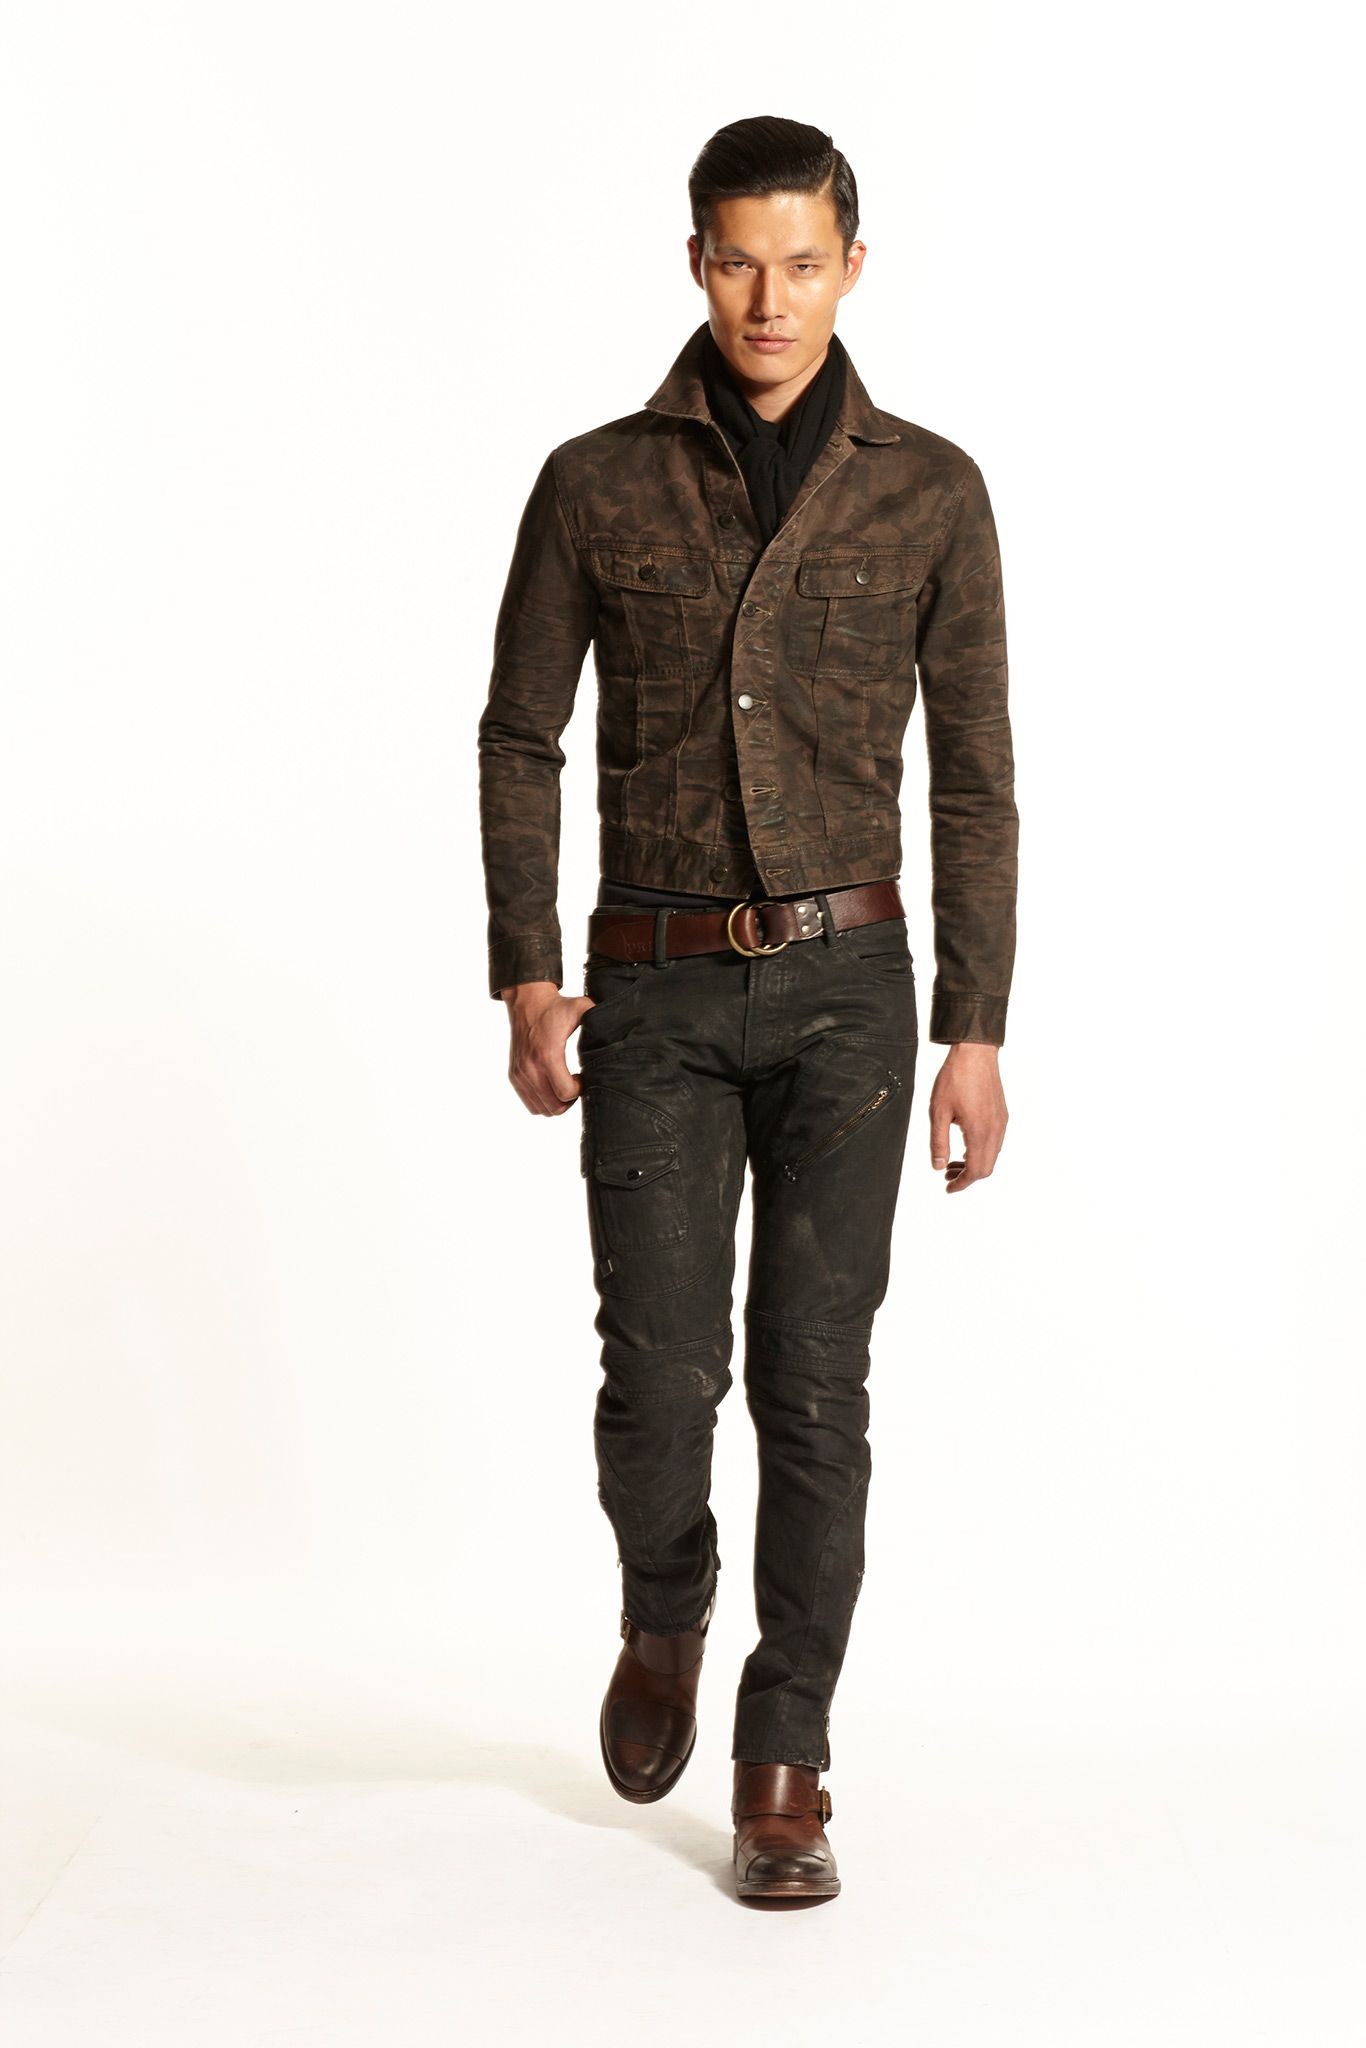 new style 84a1a c6126 Ralph Lauren Fall 2015 Menswear - Collection - Gallery ...